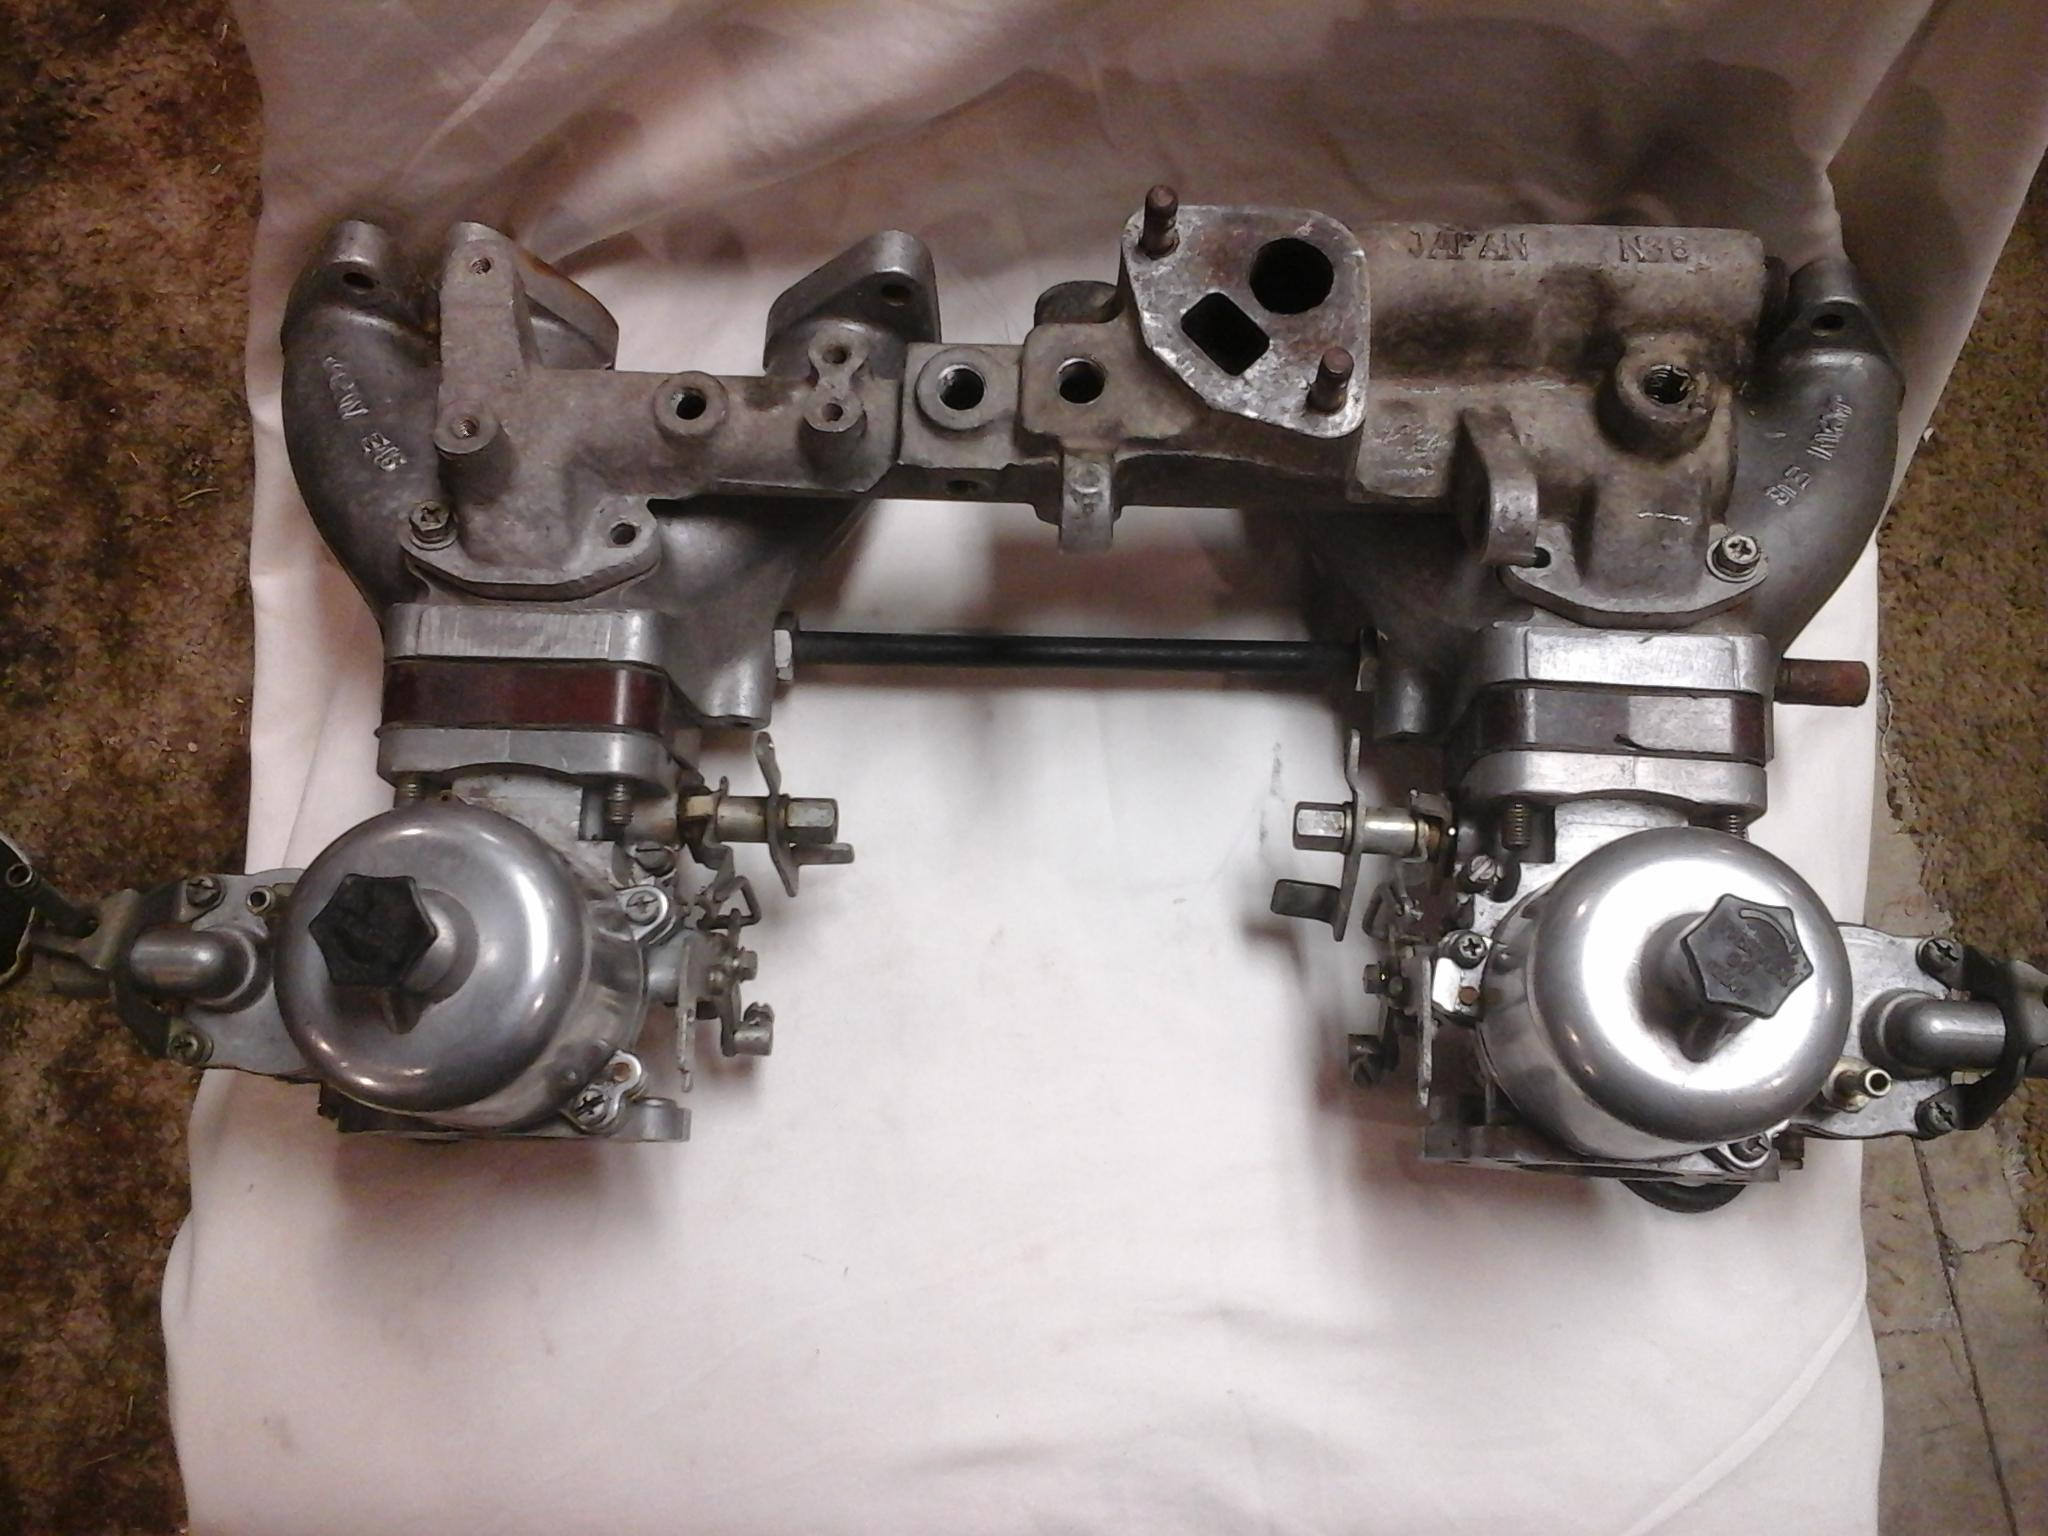 Polished 3 screw cab and E46 manifold